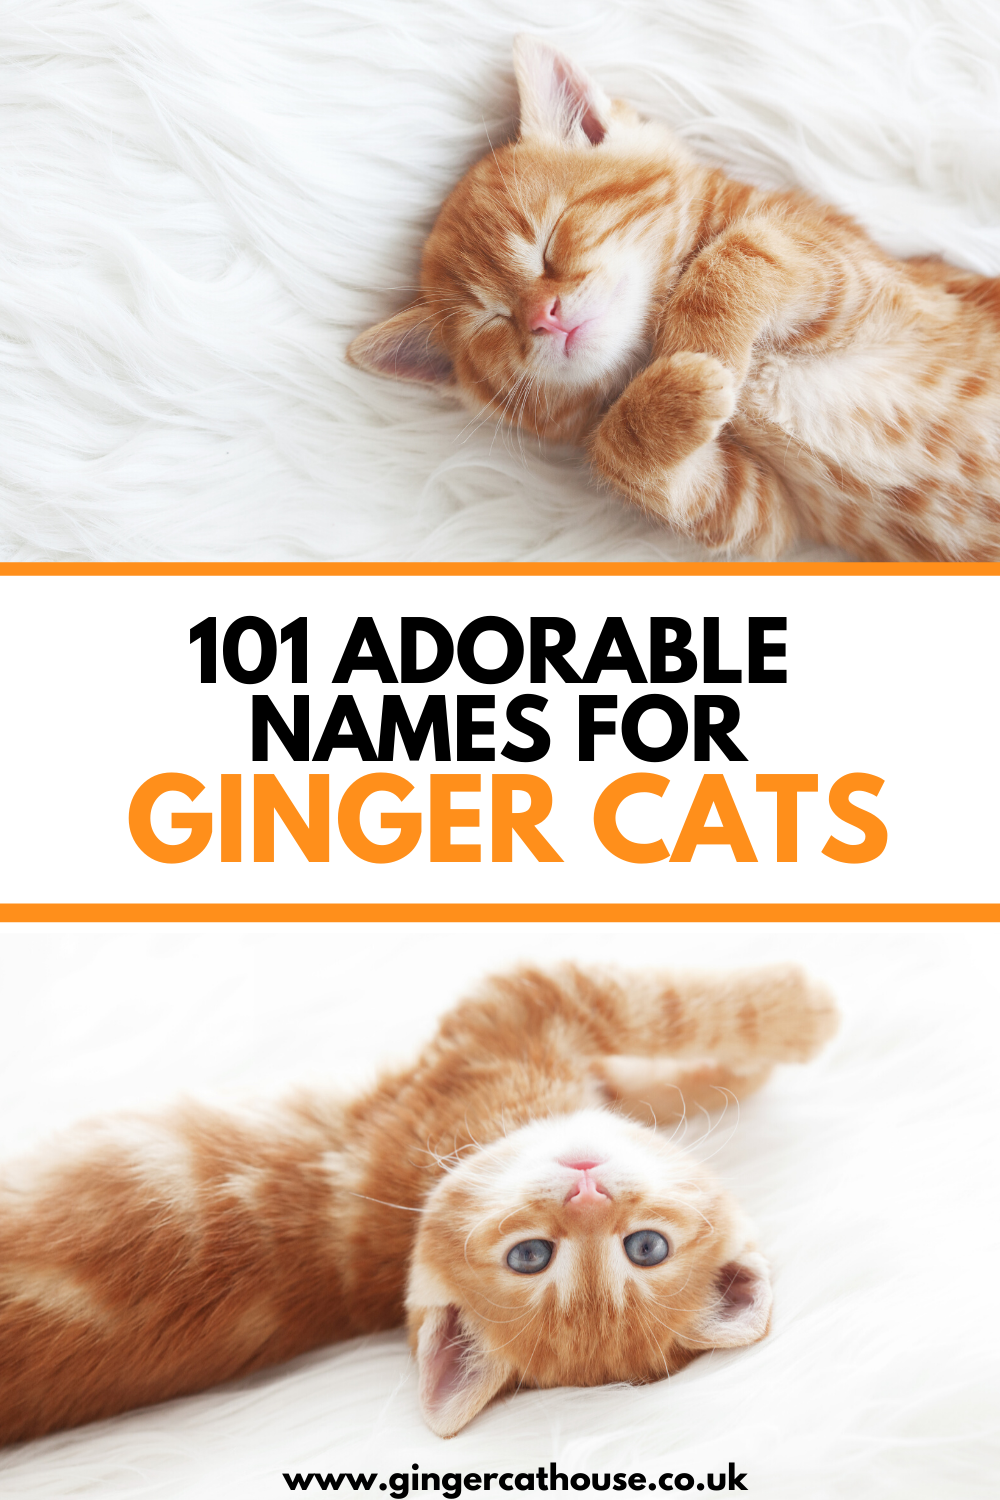 101 Adorable cat names for ginger cats! in 2020 Ginger